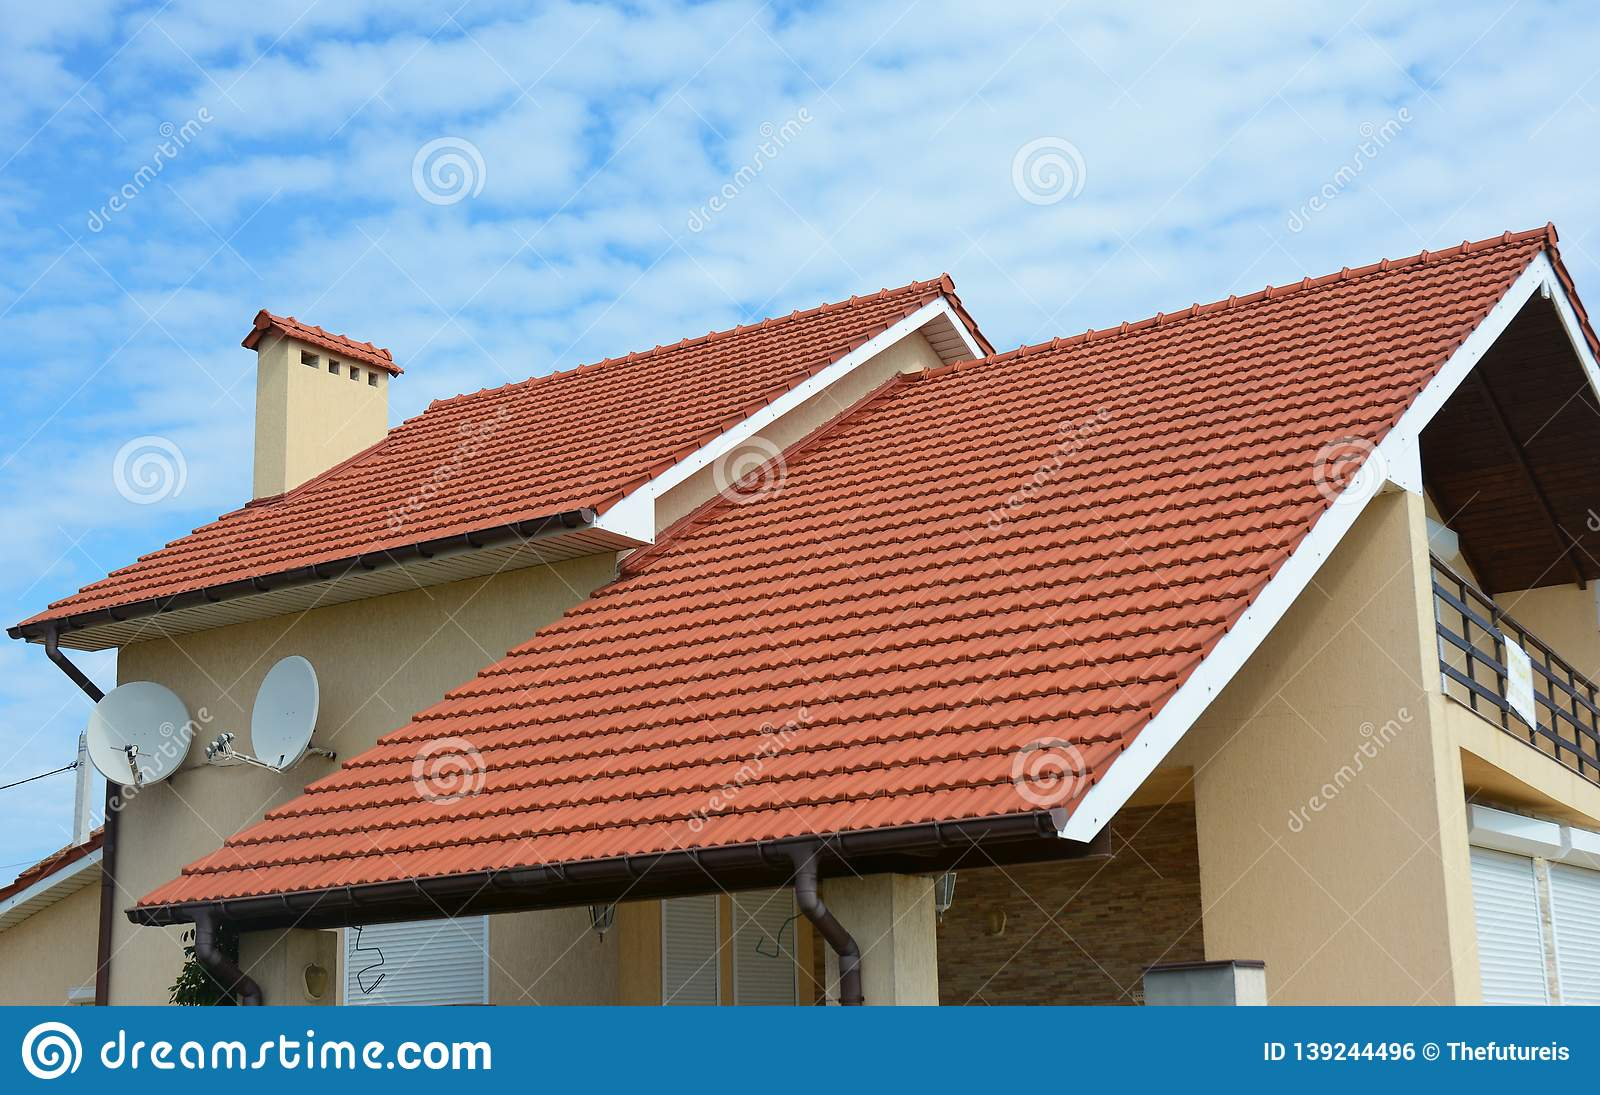 Modern House With Chimney, Red Clay Tiled Roof And Gable And